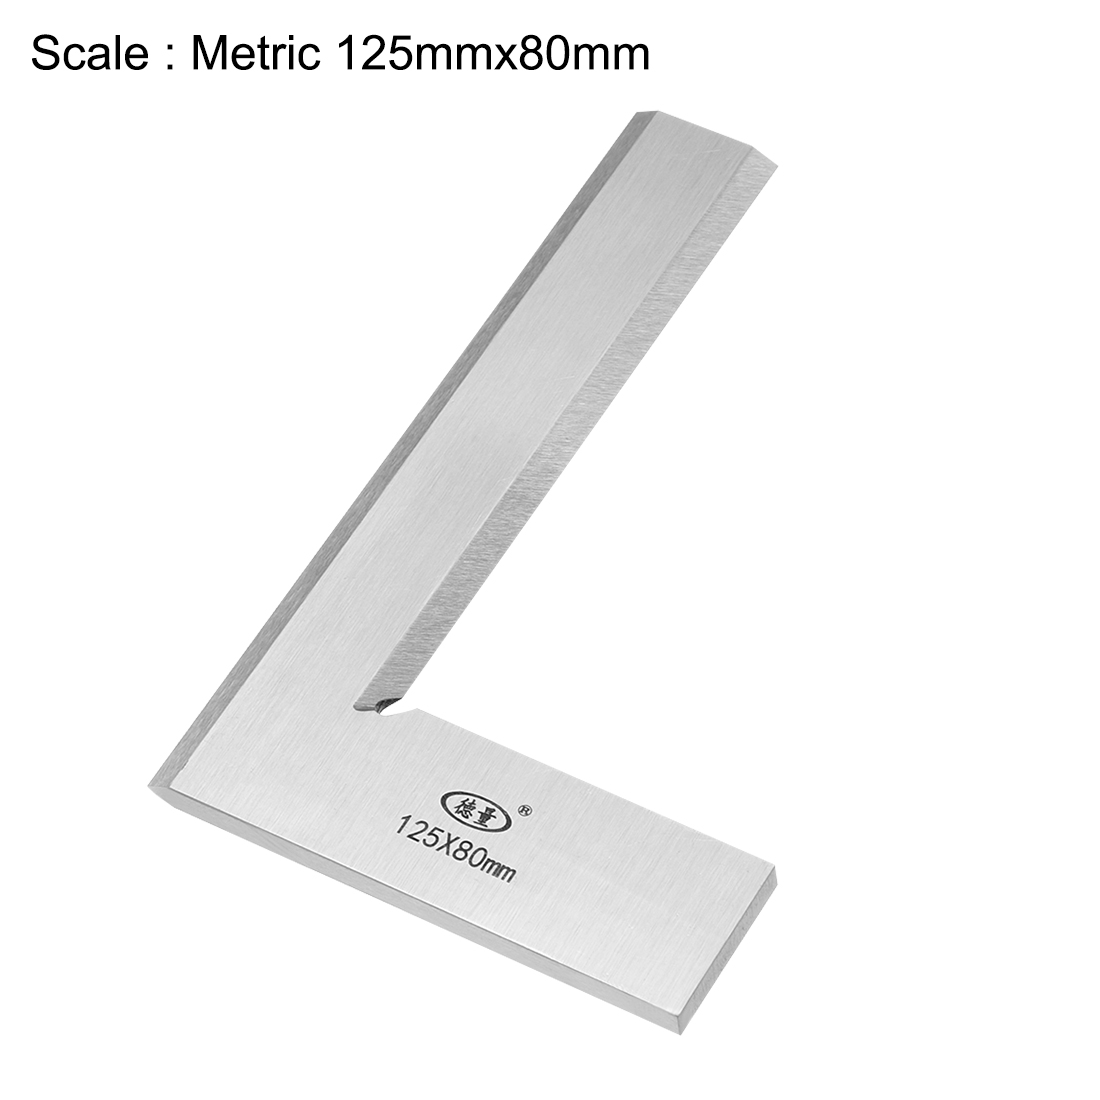 Try Square Ruler, 125mmx80mm Woodworking Blade Measuring Tool Right Angle - image 1 de 3